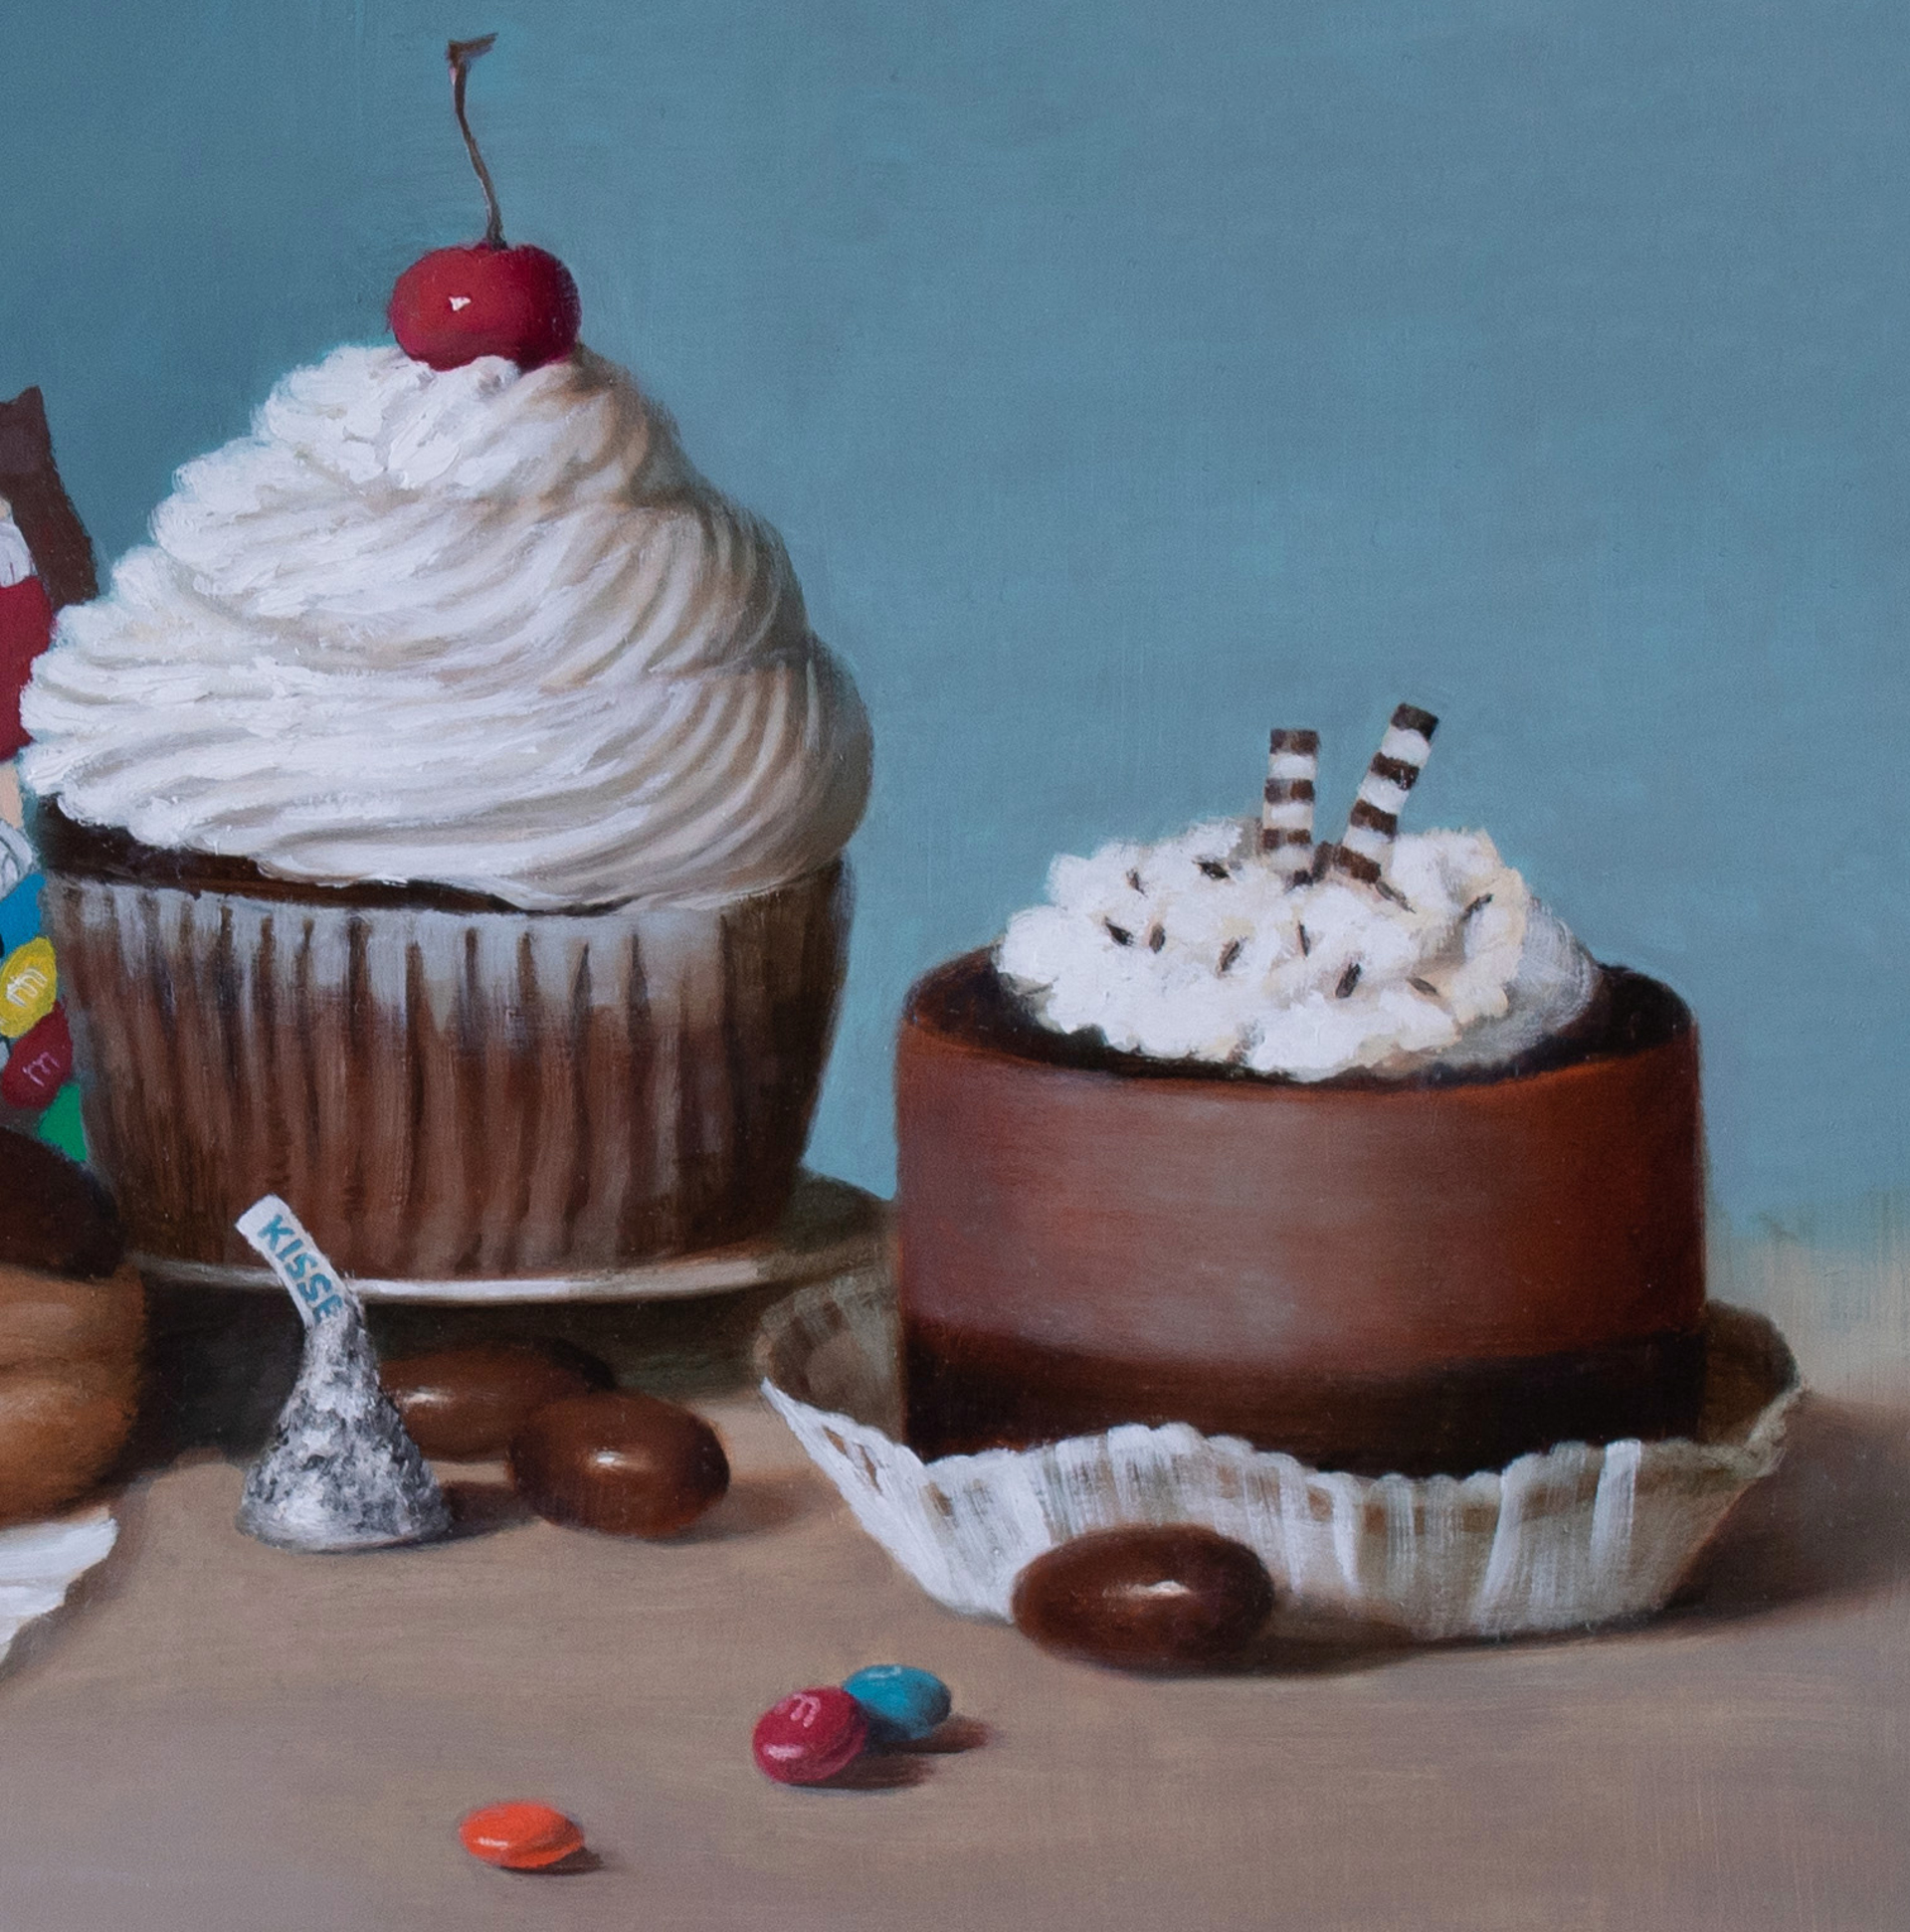 Chocolate Choices by Kelly Birkenruth